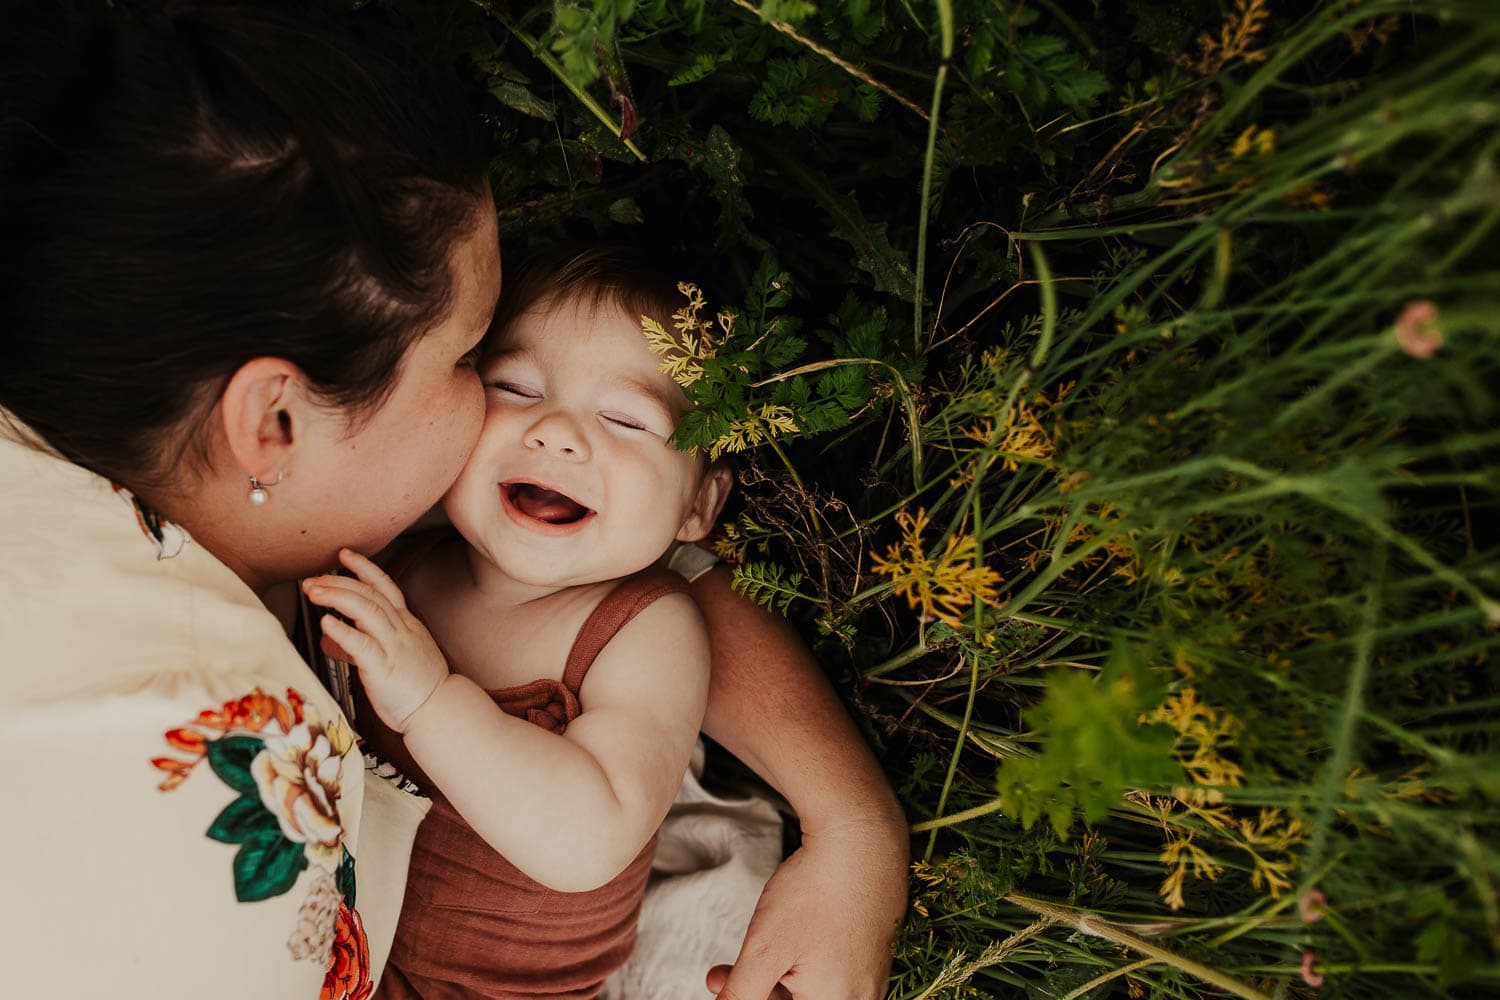 mom kissing baby's cheek while ha laughs - laying in tall green grass